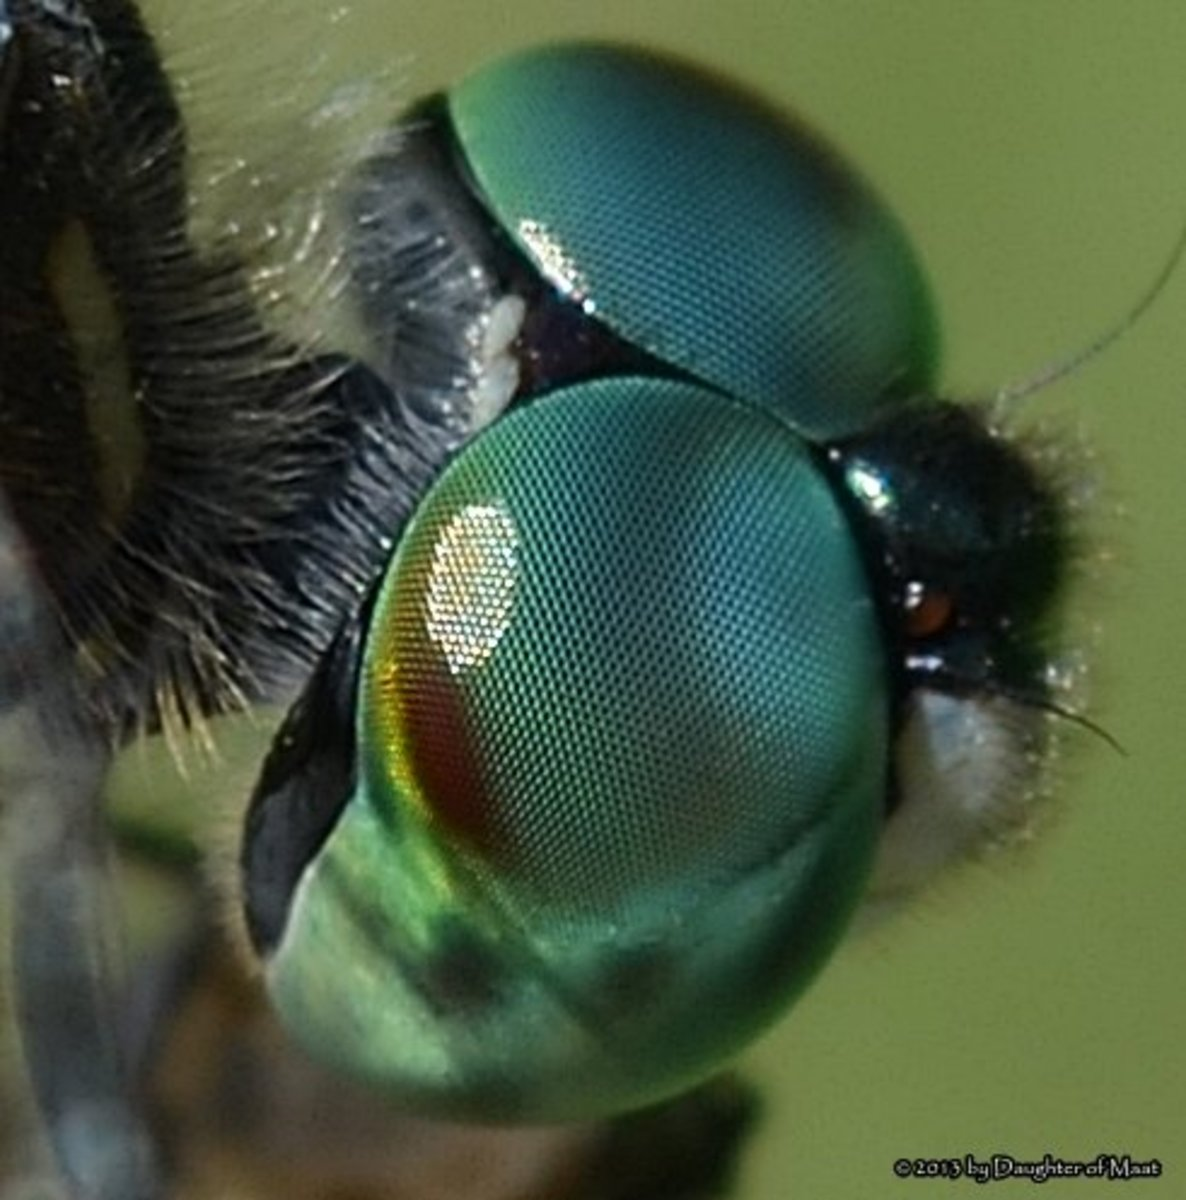 A close up of the compound eyes of a blue dasher dragonfly.